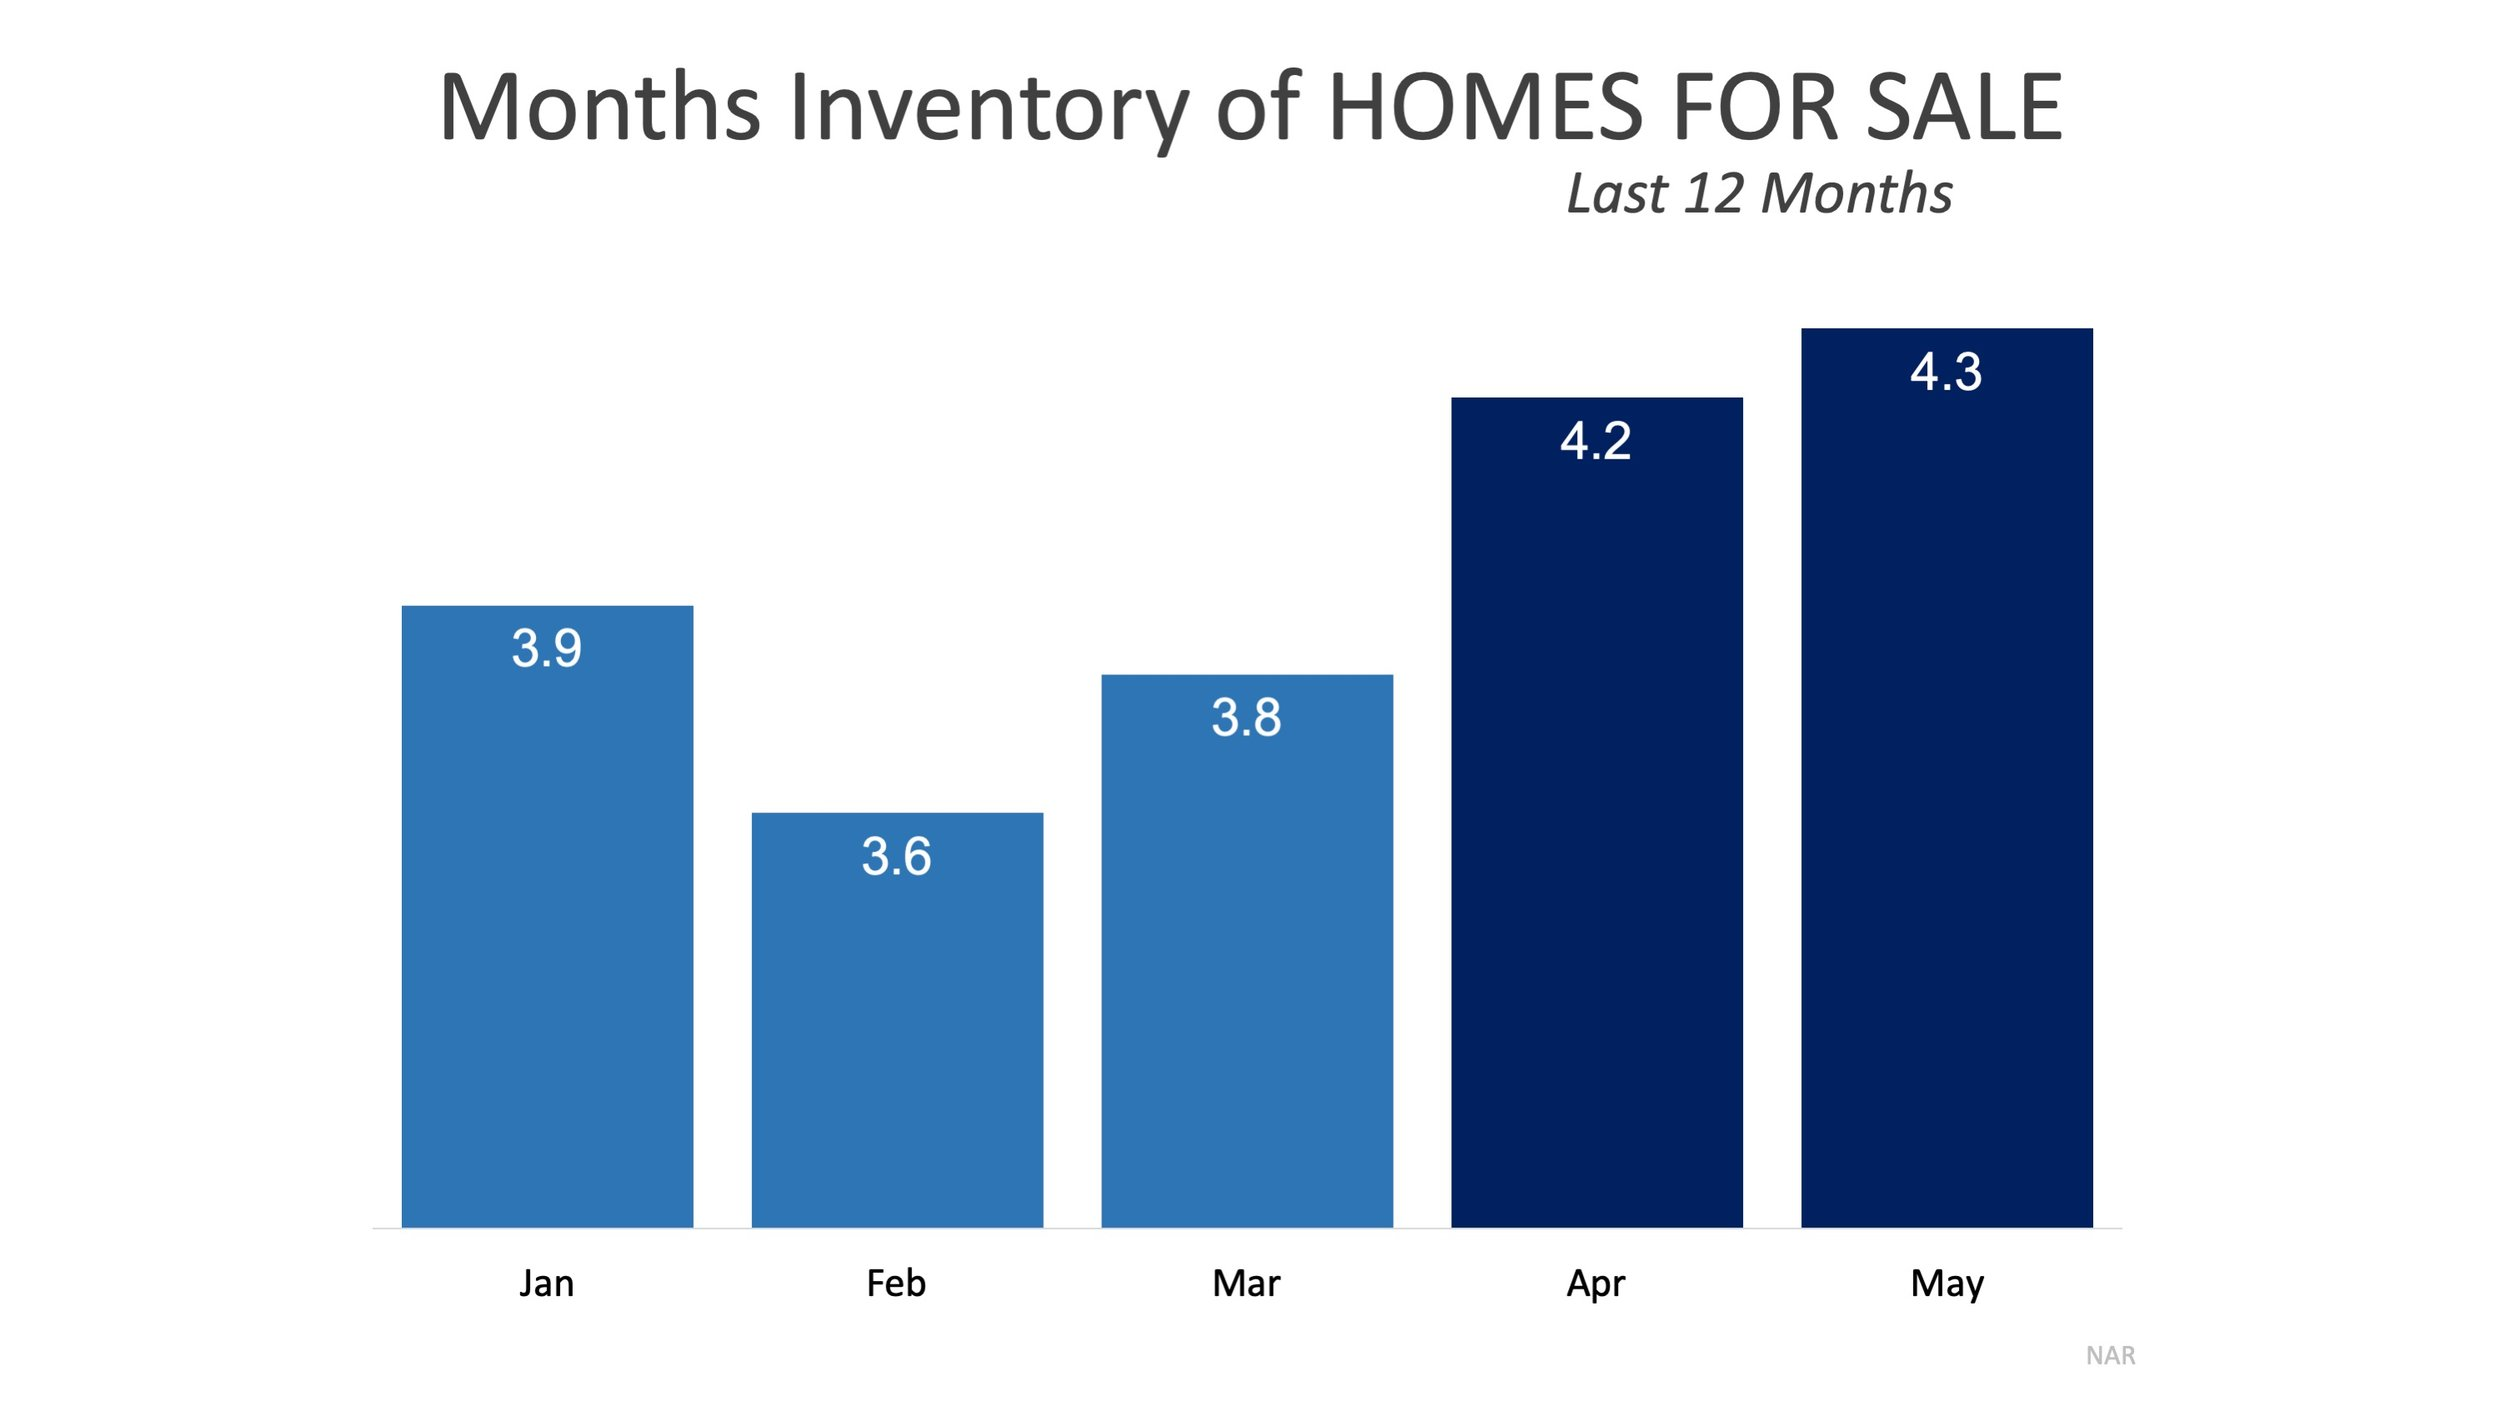 Months home inventory for sale on market